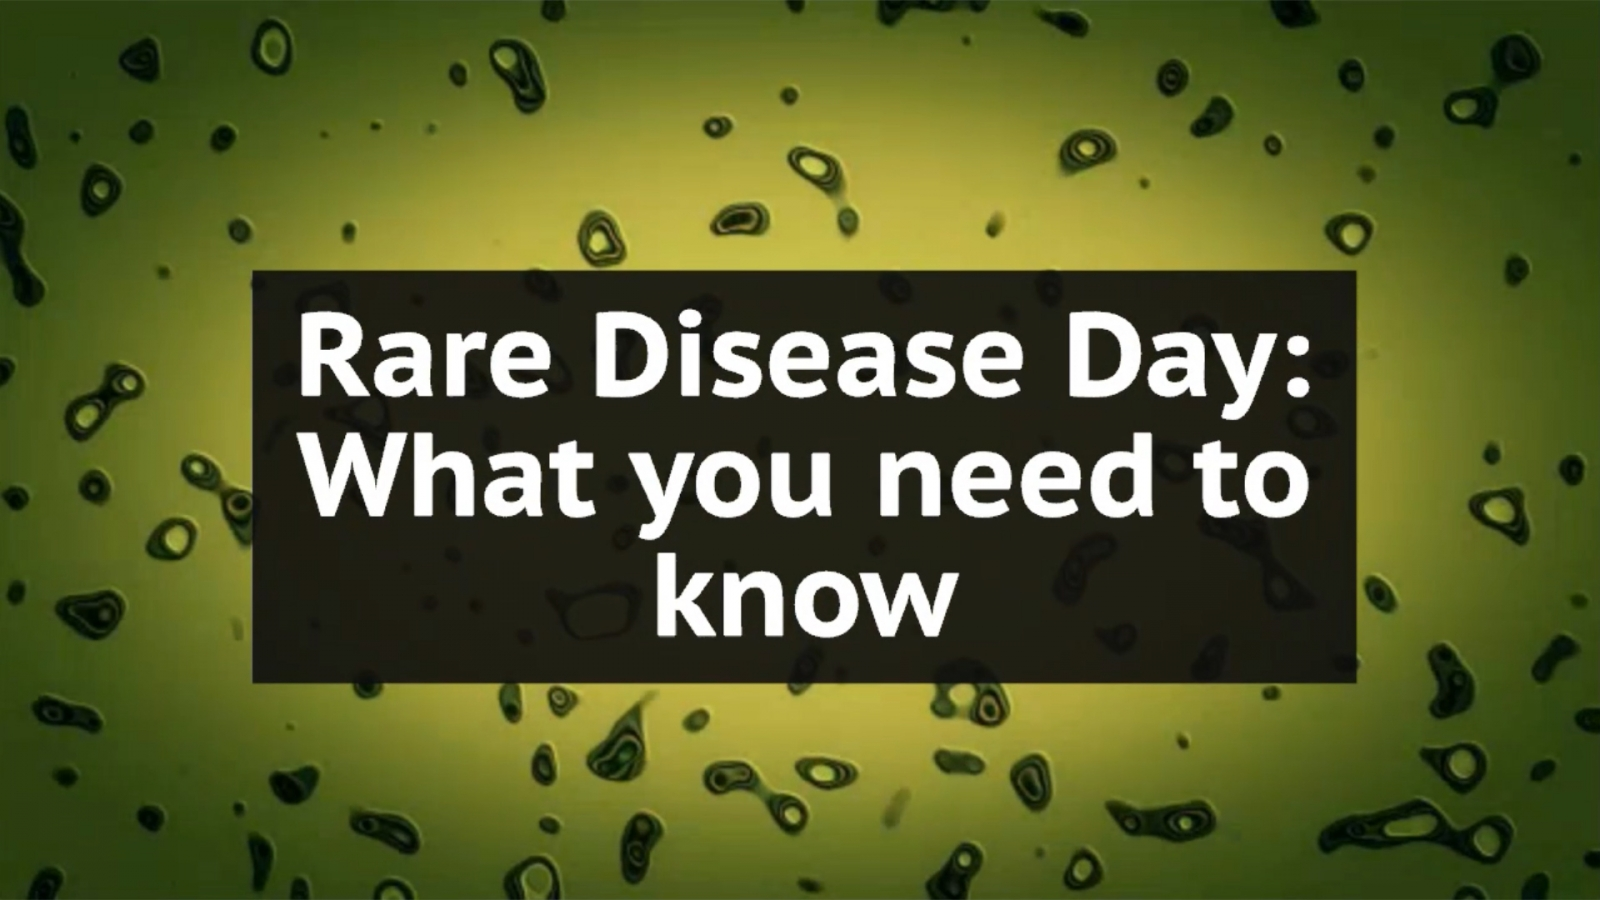 Rare Disease Day: What you need to know